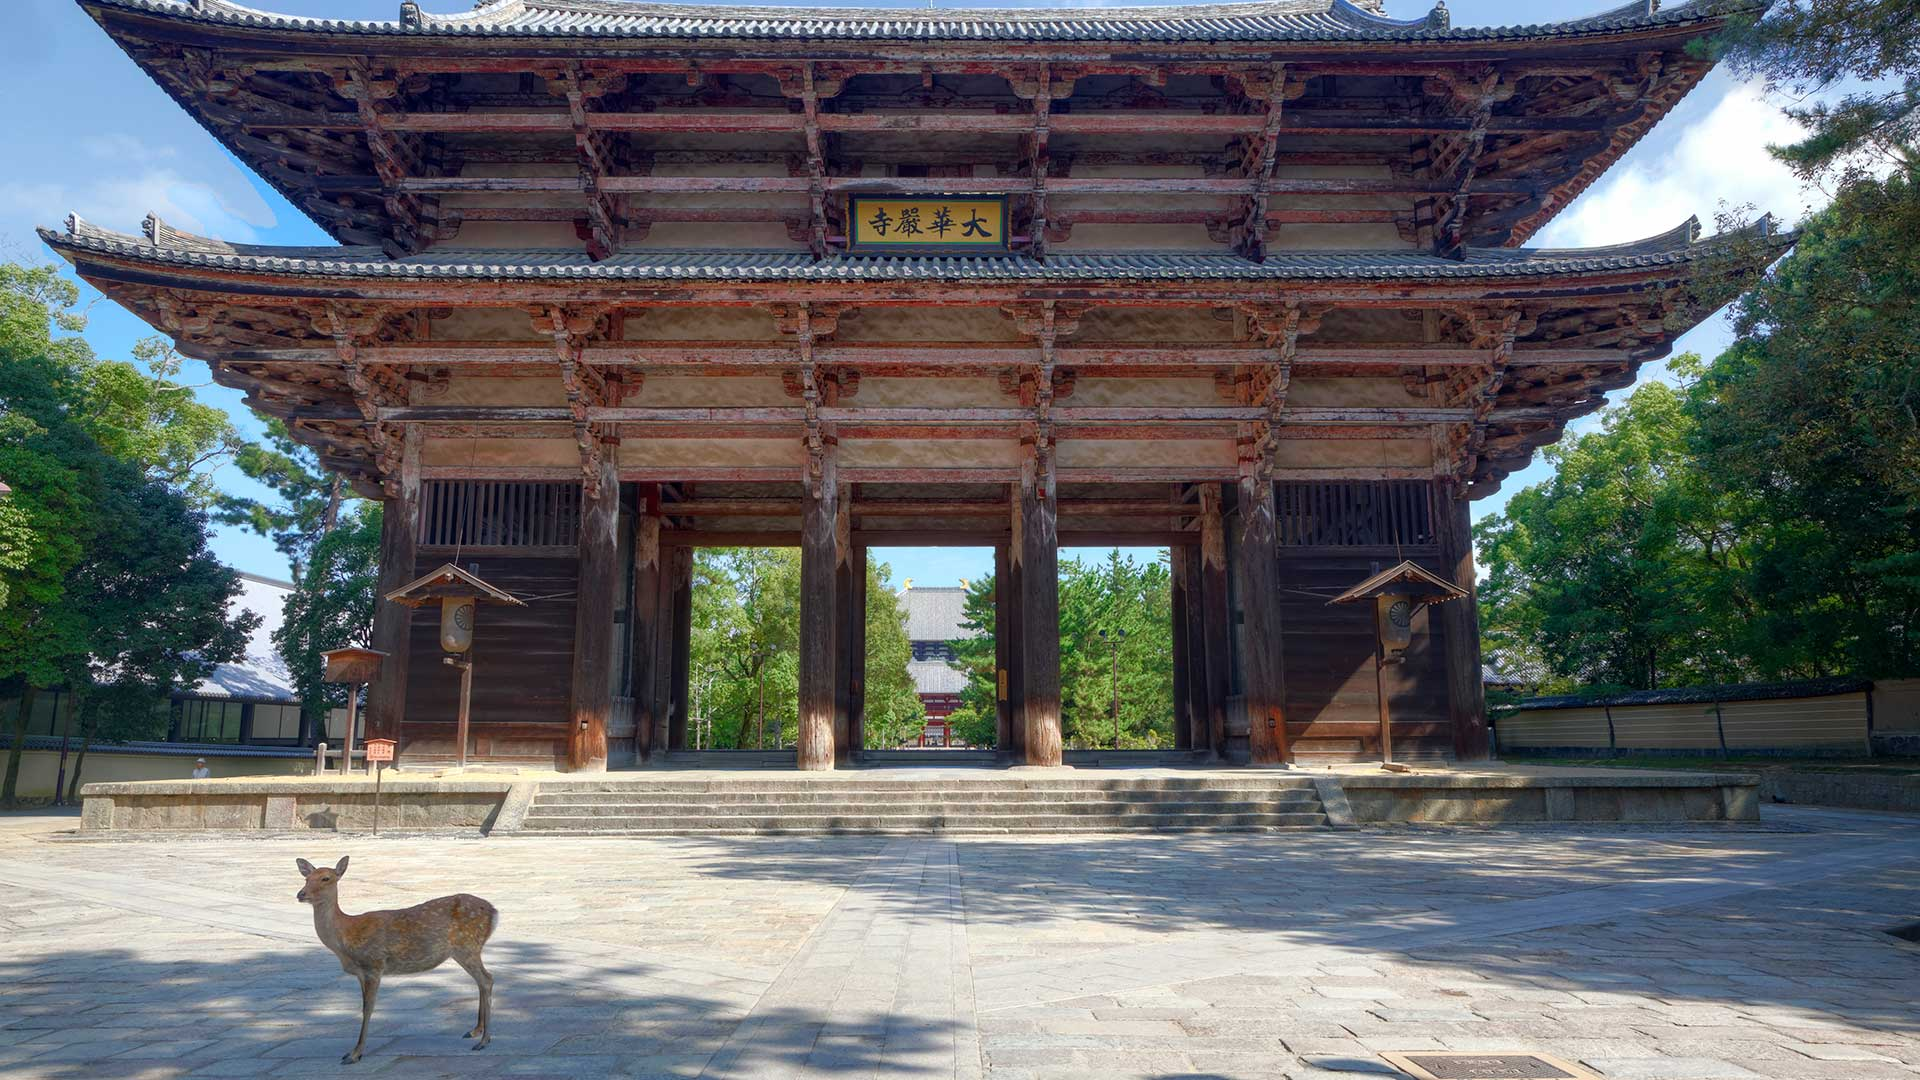 Deer in front of Todai-ji Temple, Nara